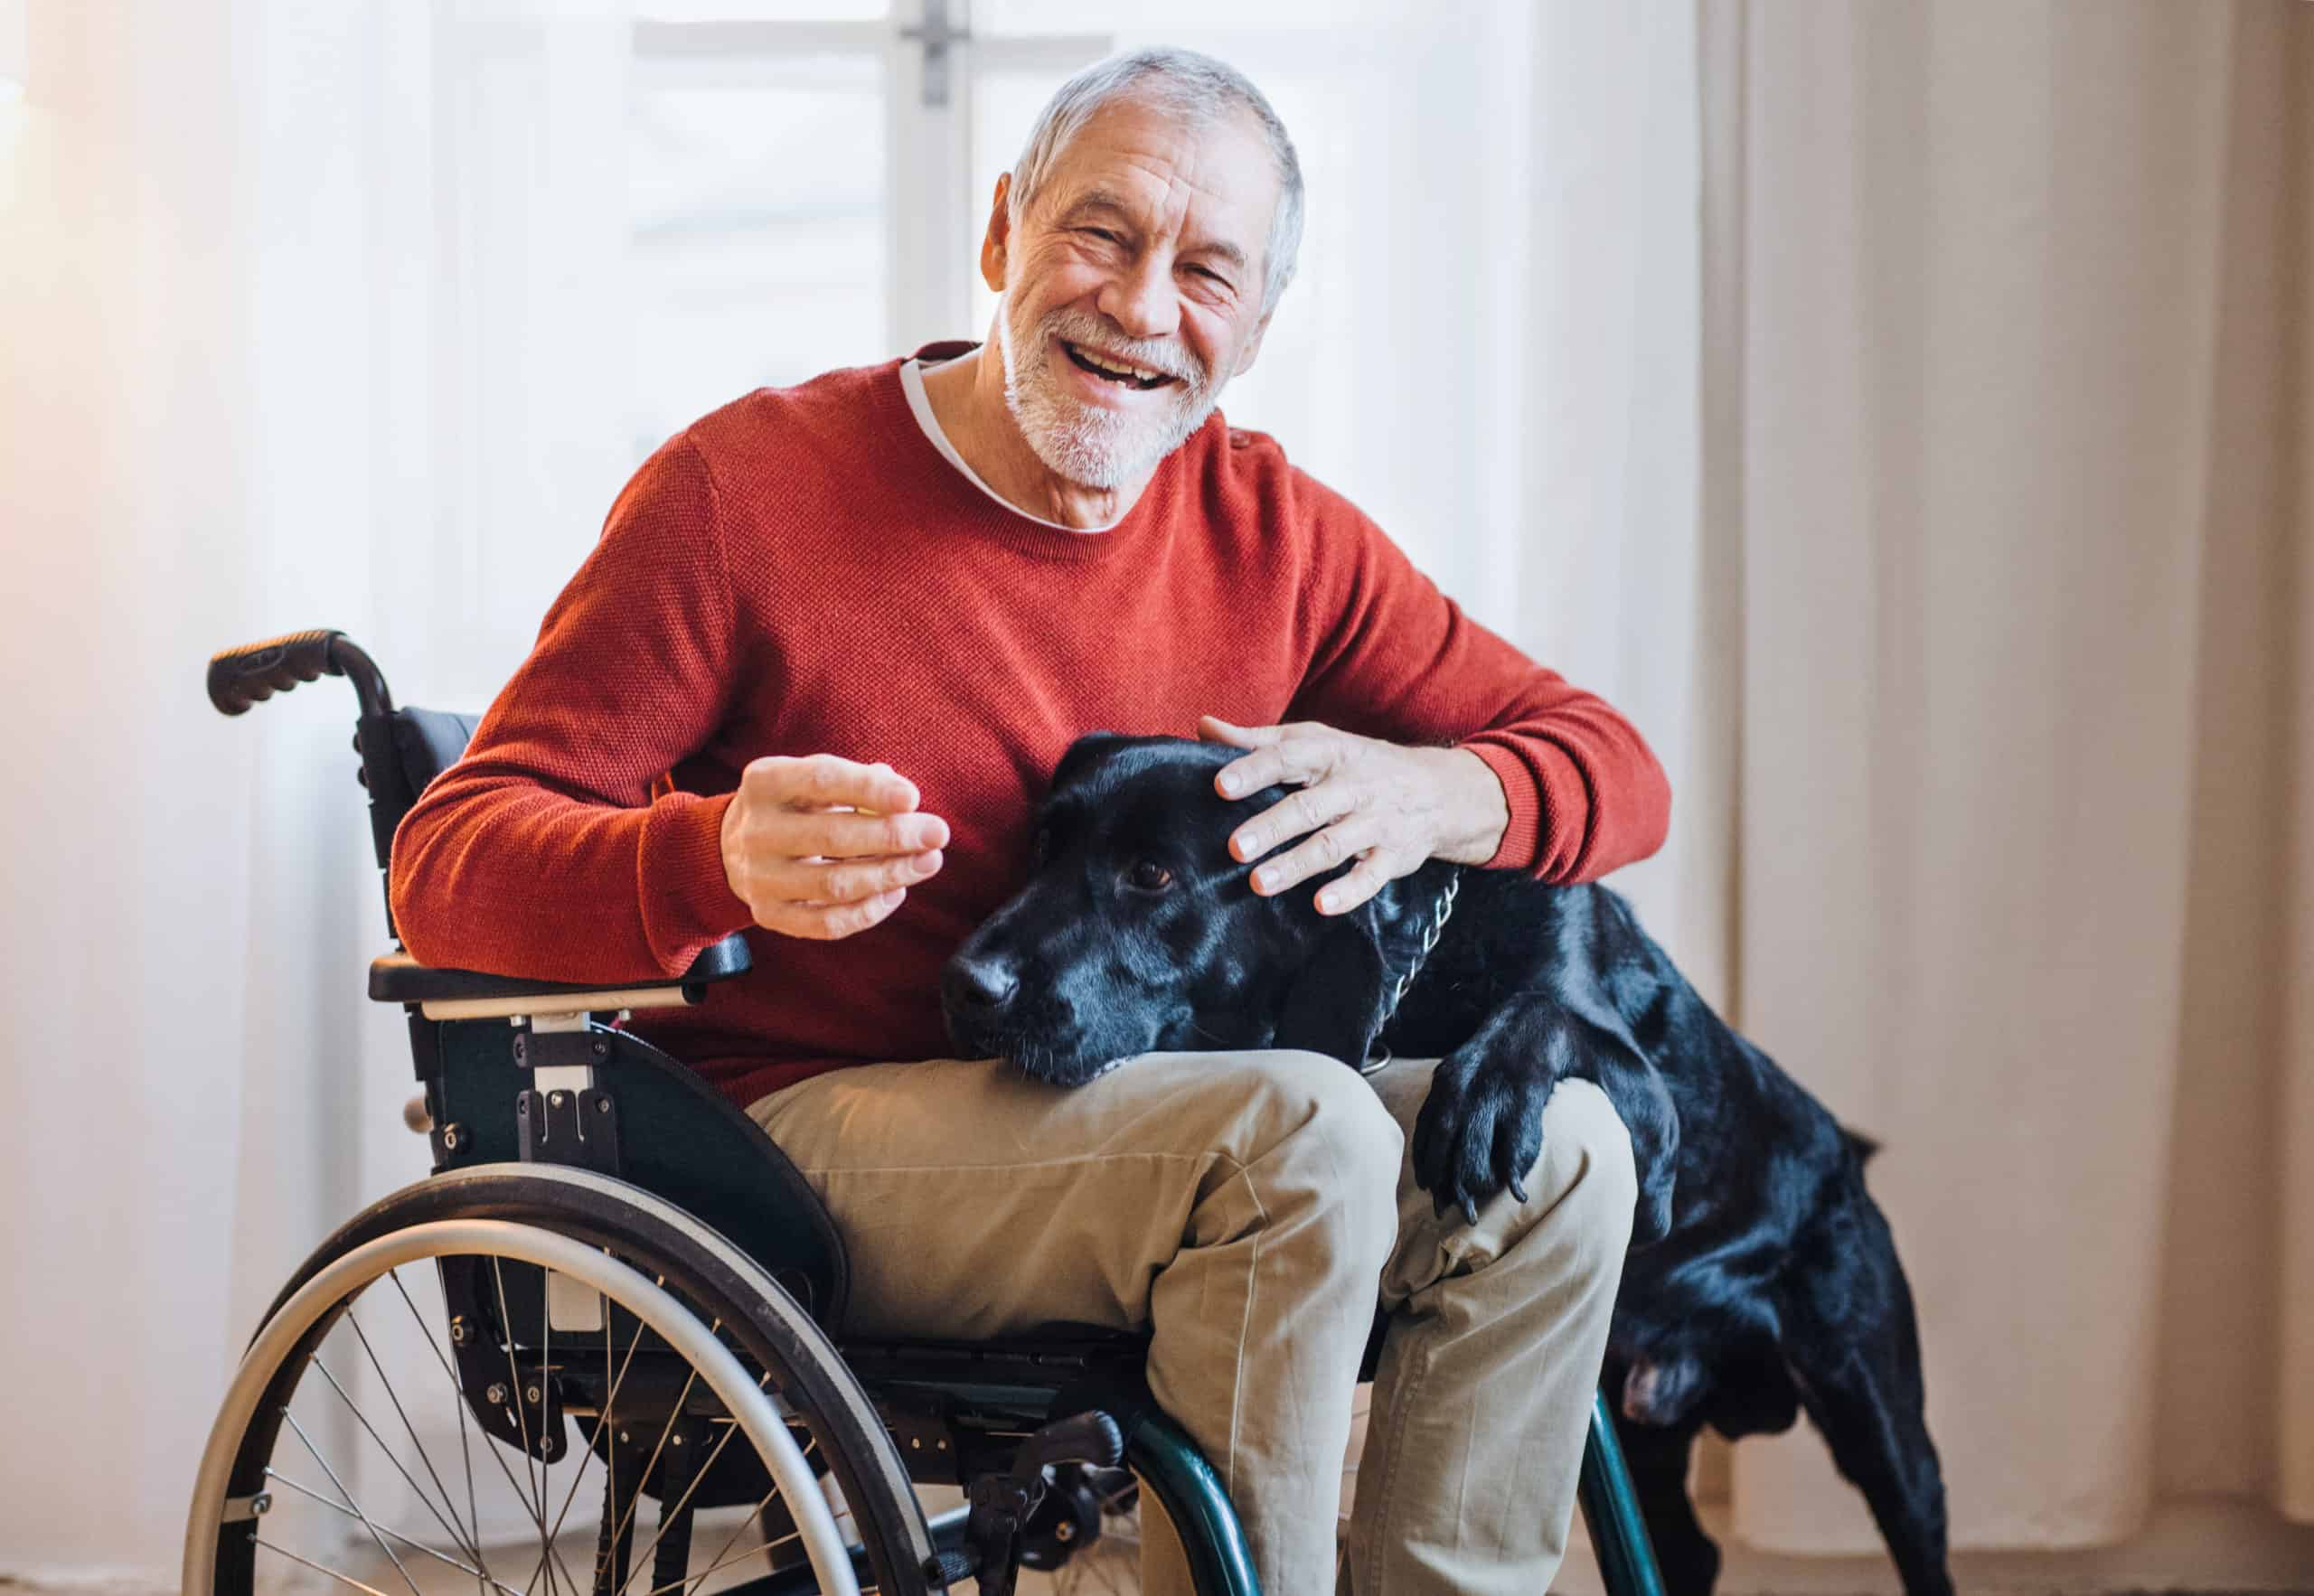 elderly man in a wheelchair with a dog in his lap